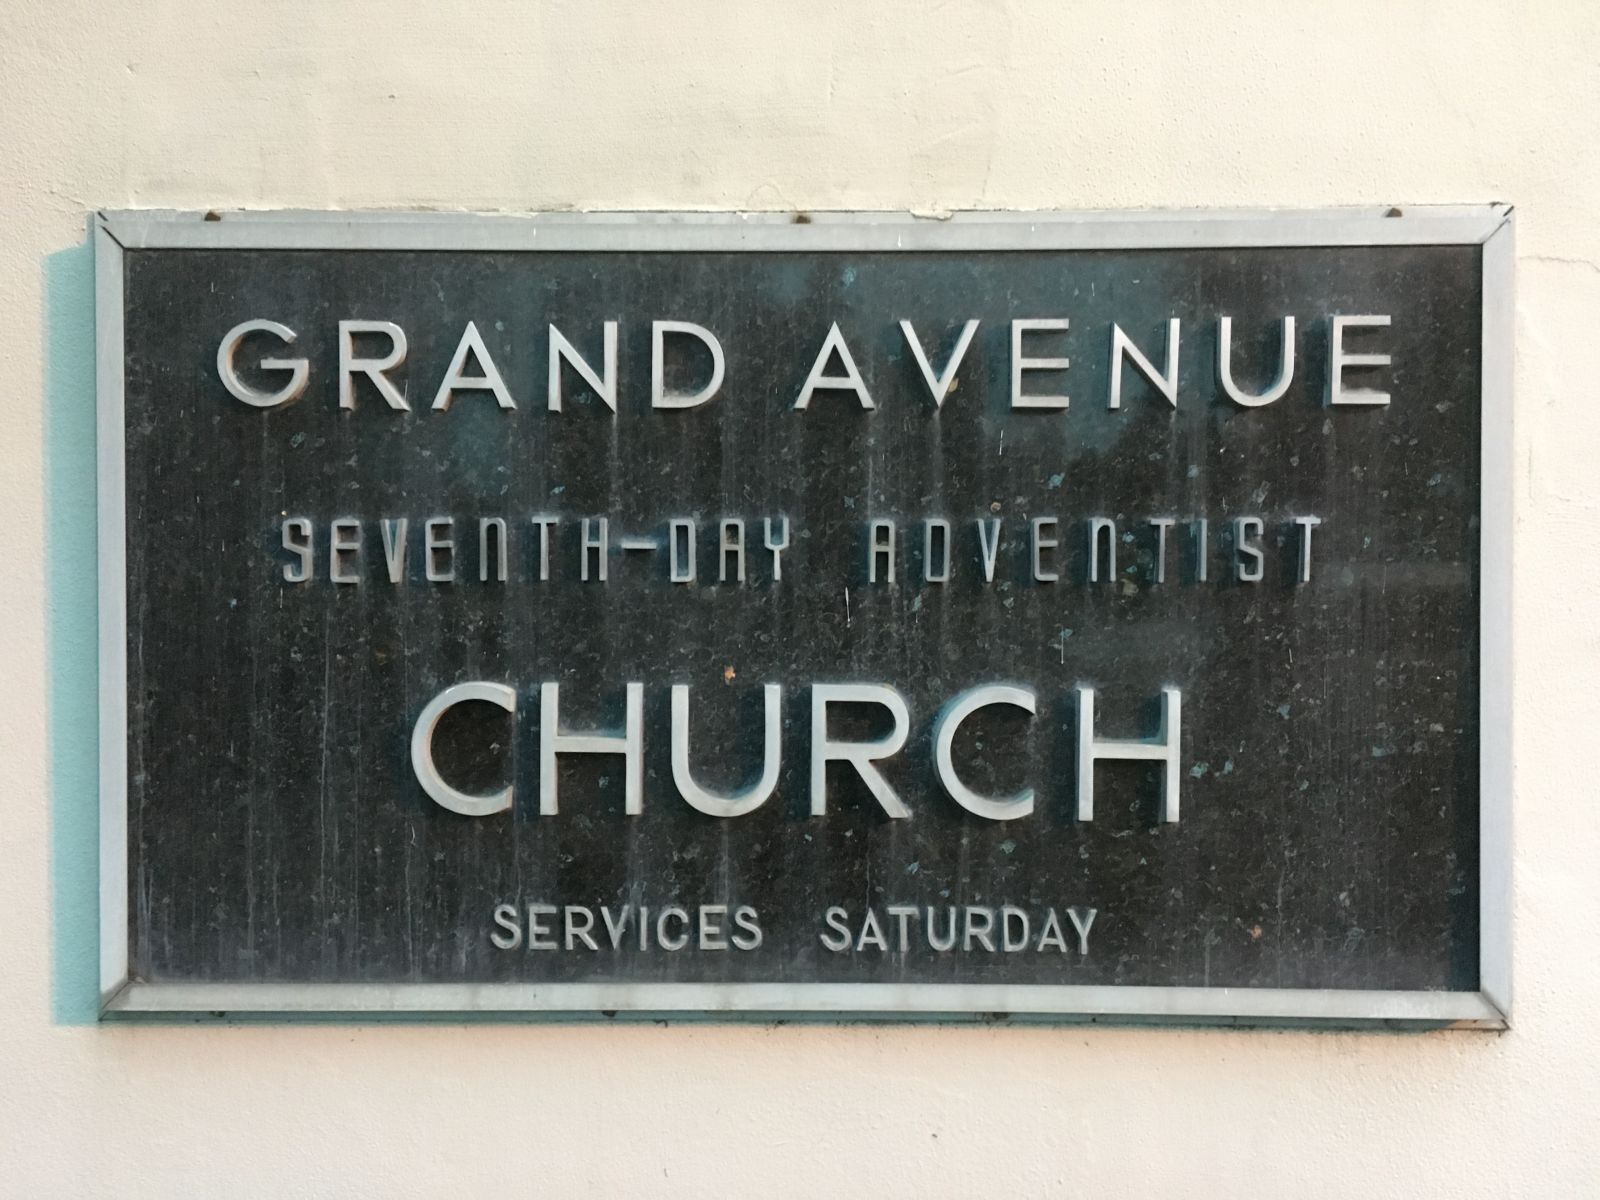 Grand Avenue Seventh-Day Adventist